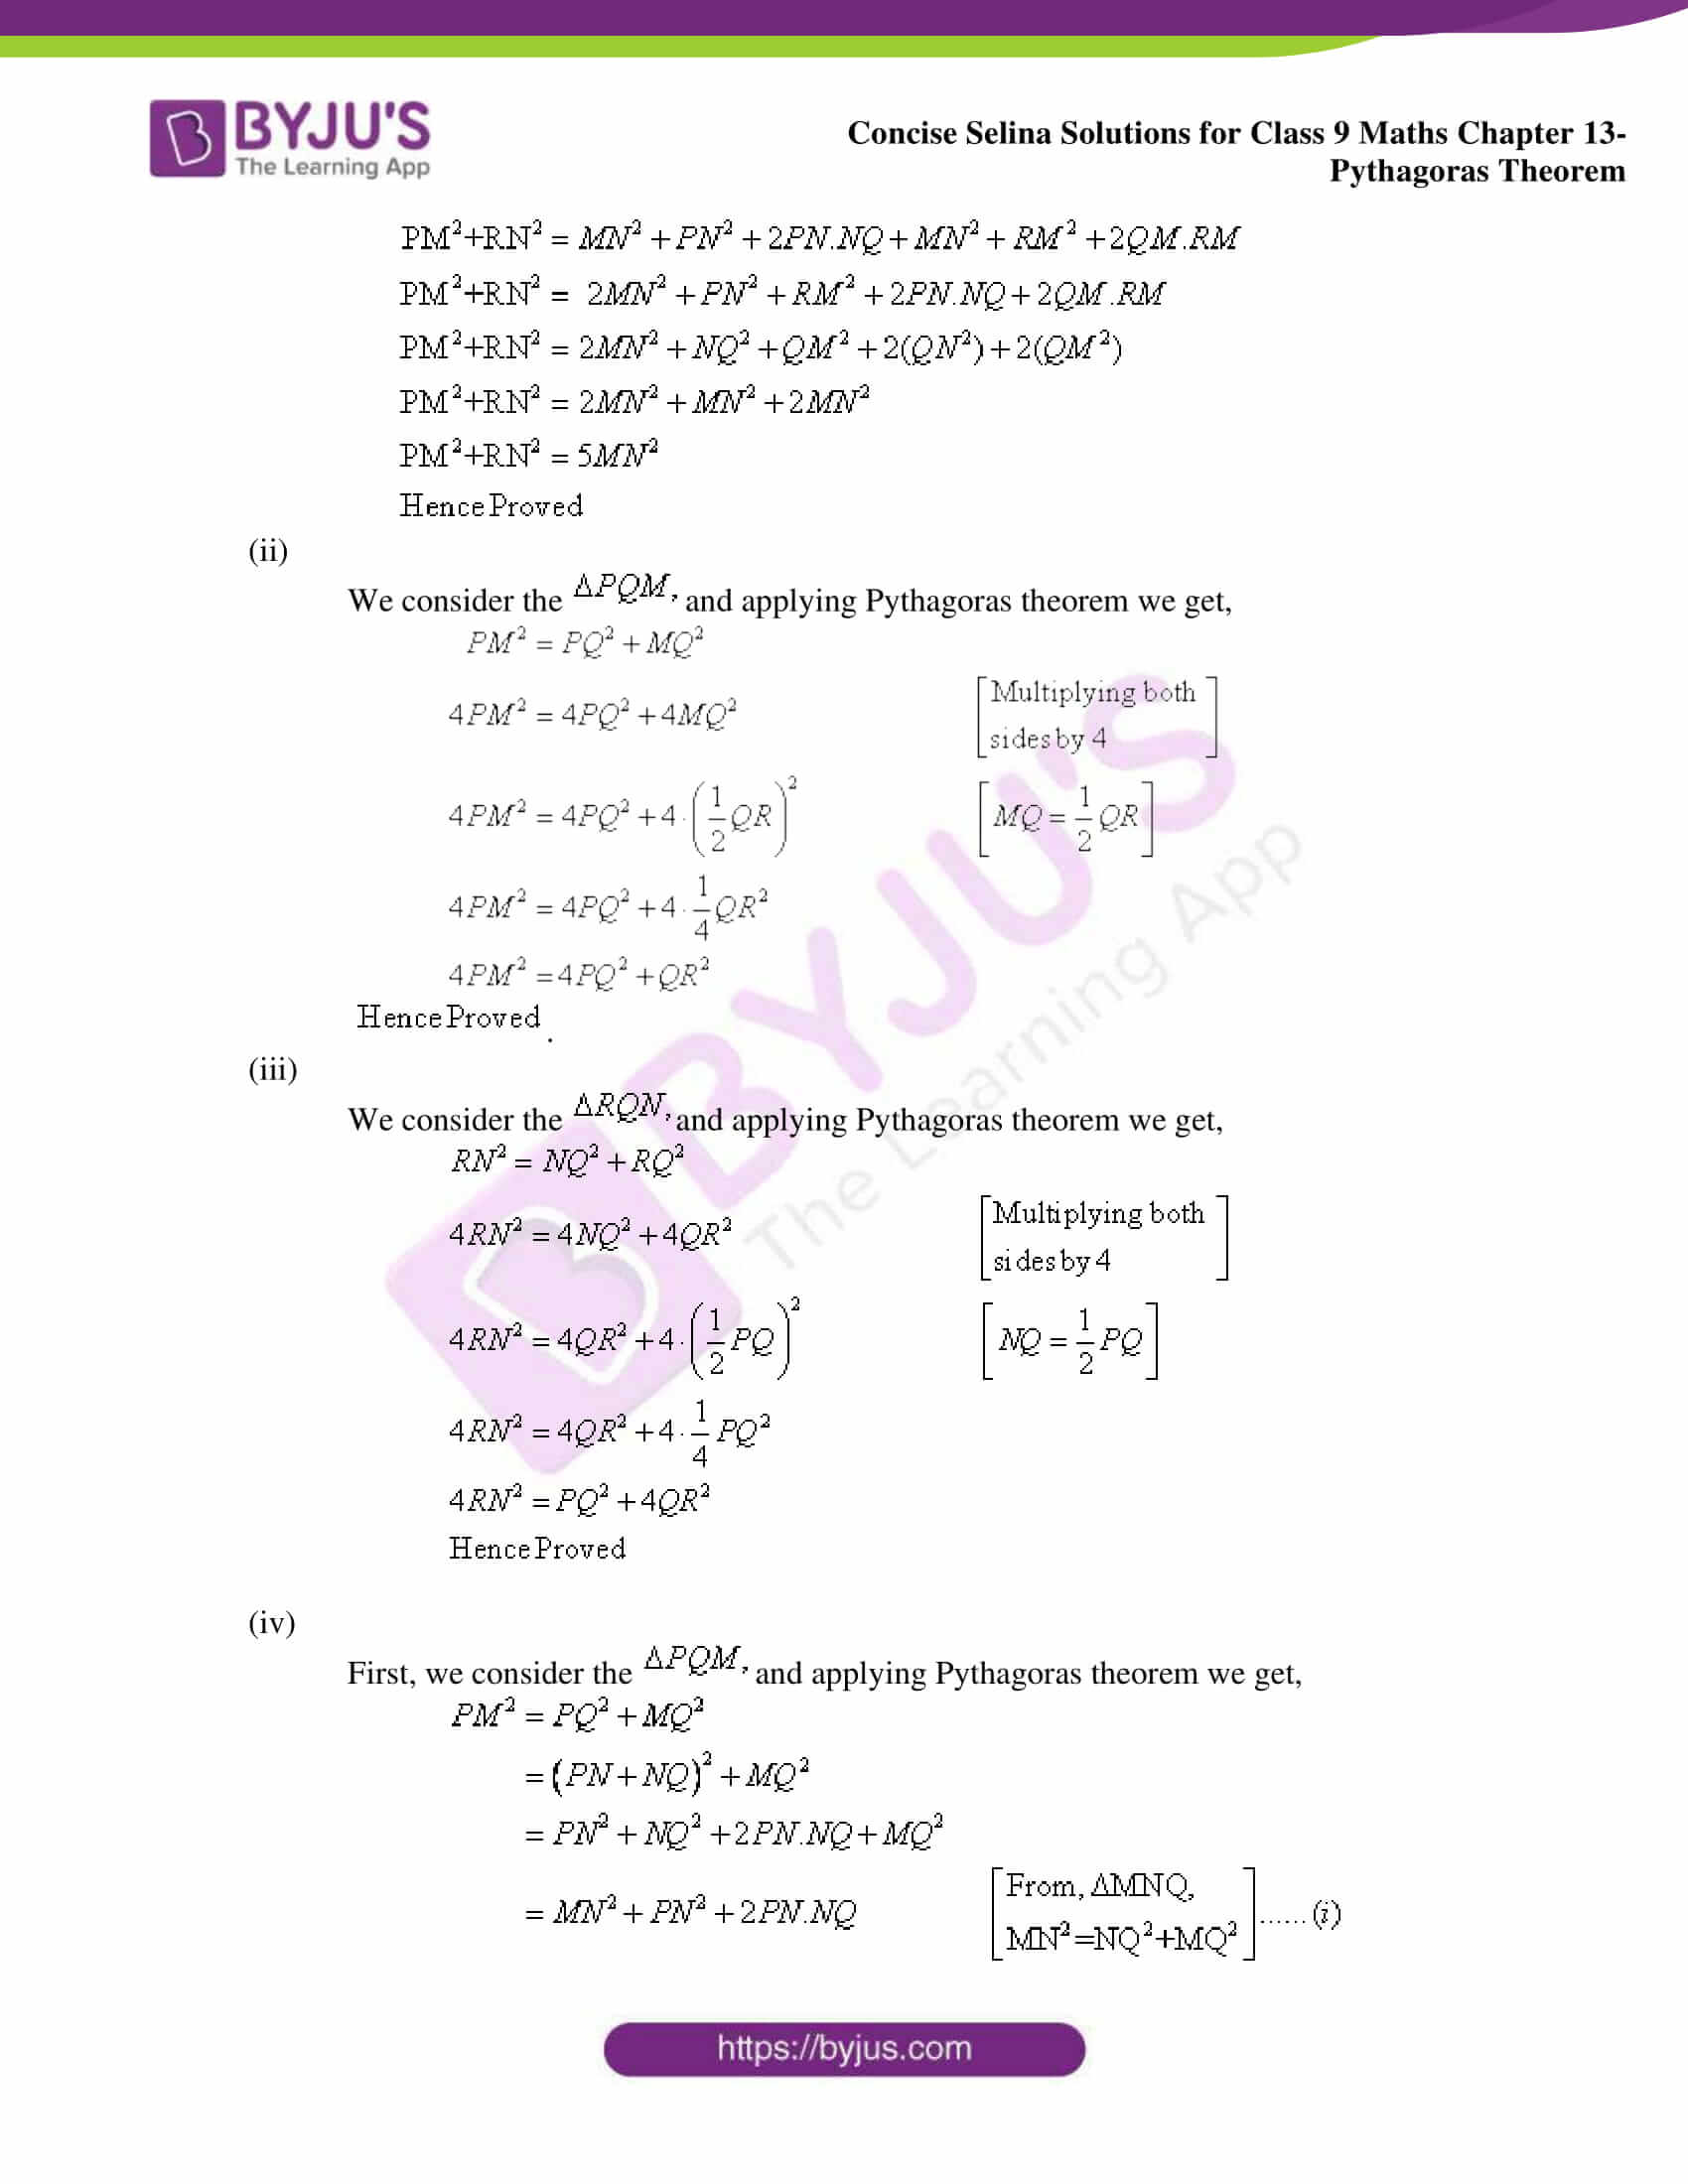 selina Solutions for Class 9 Maths Chapter 13 part 13